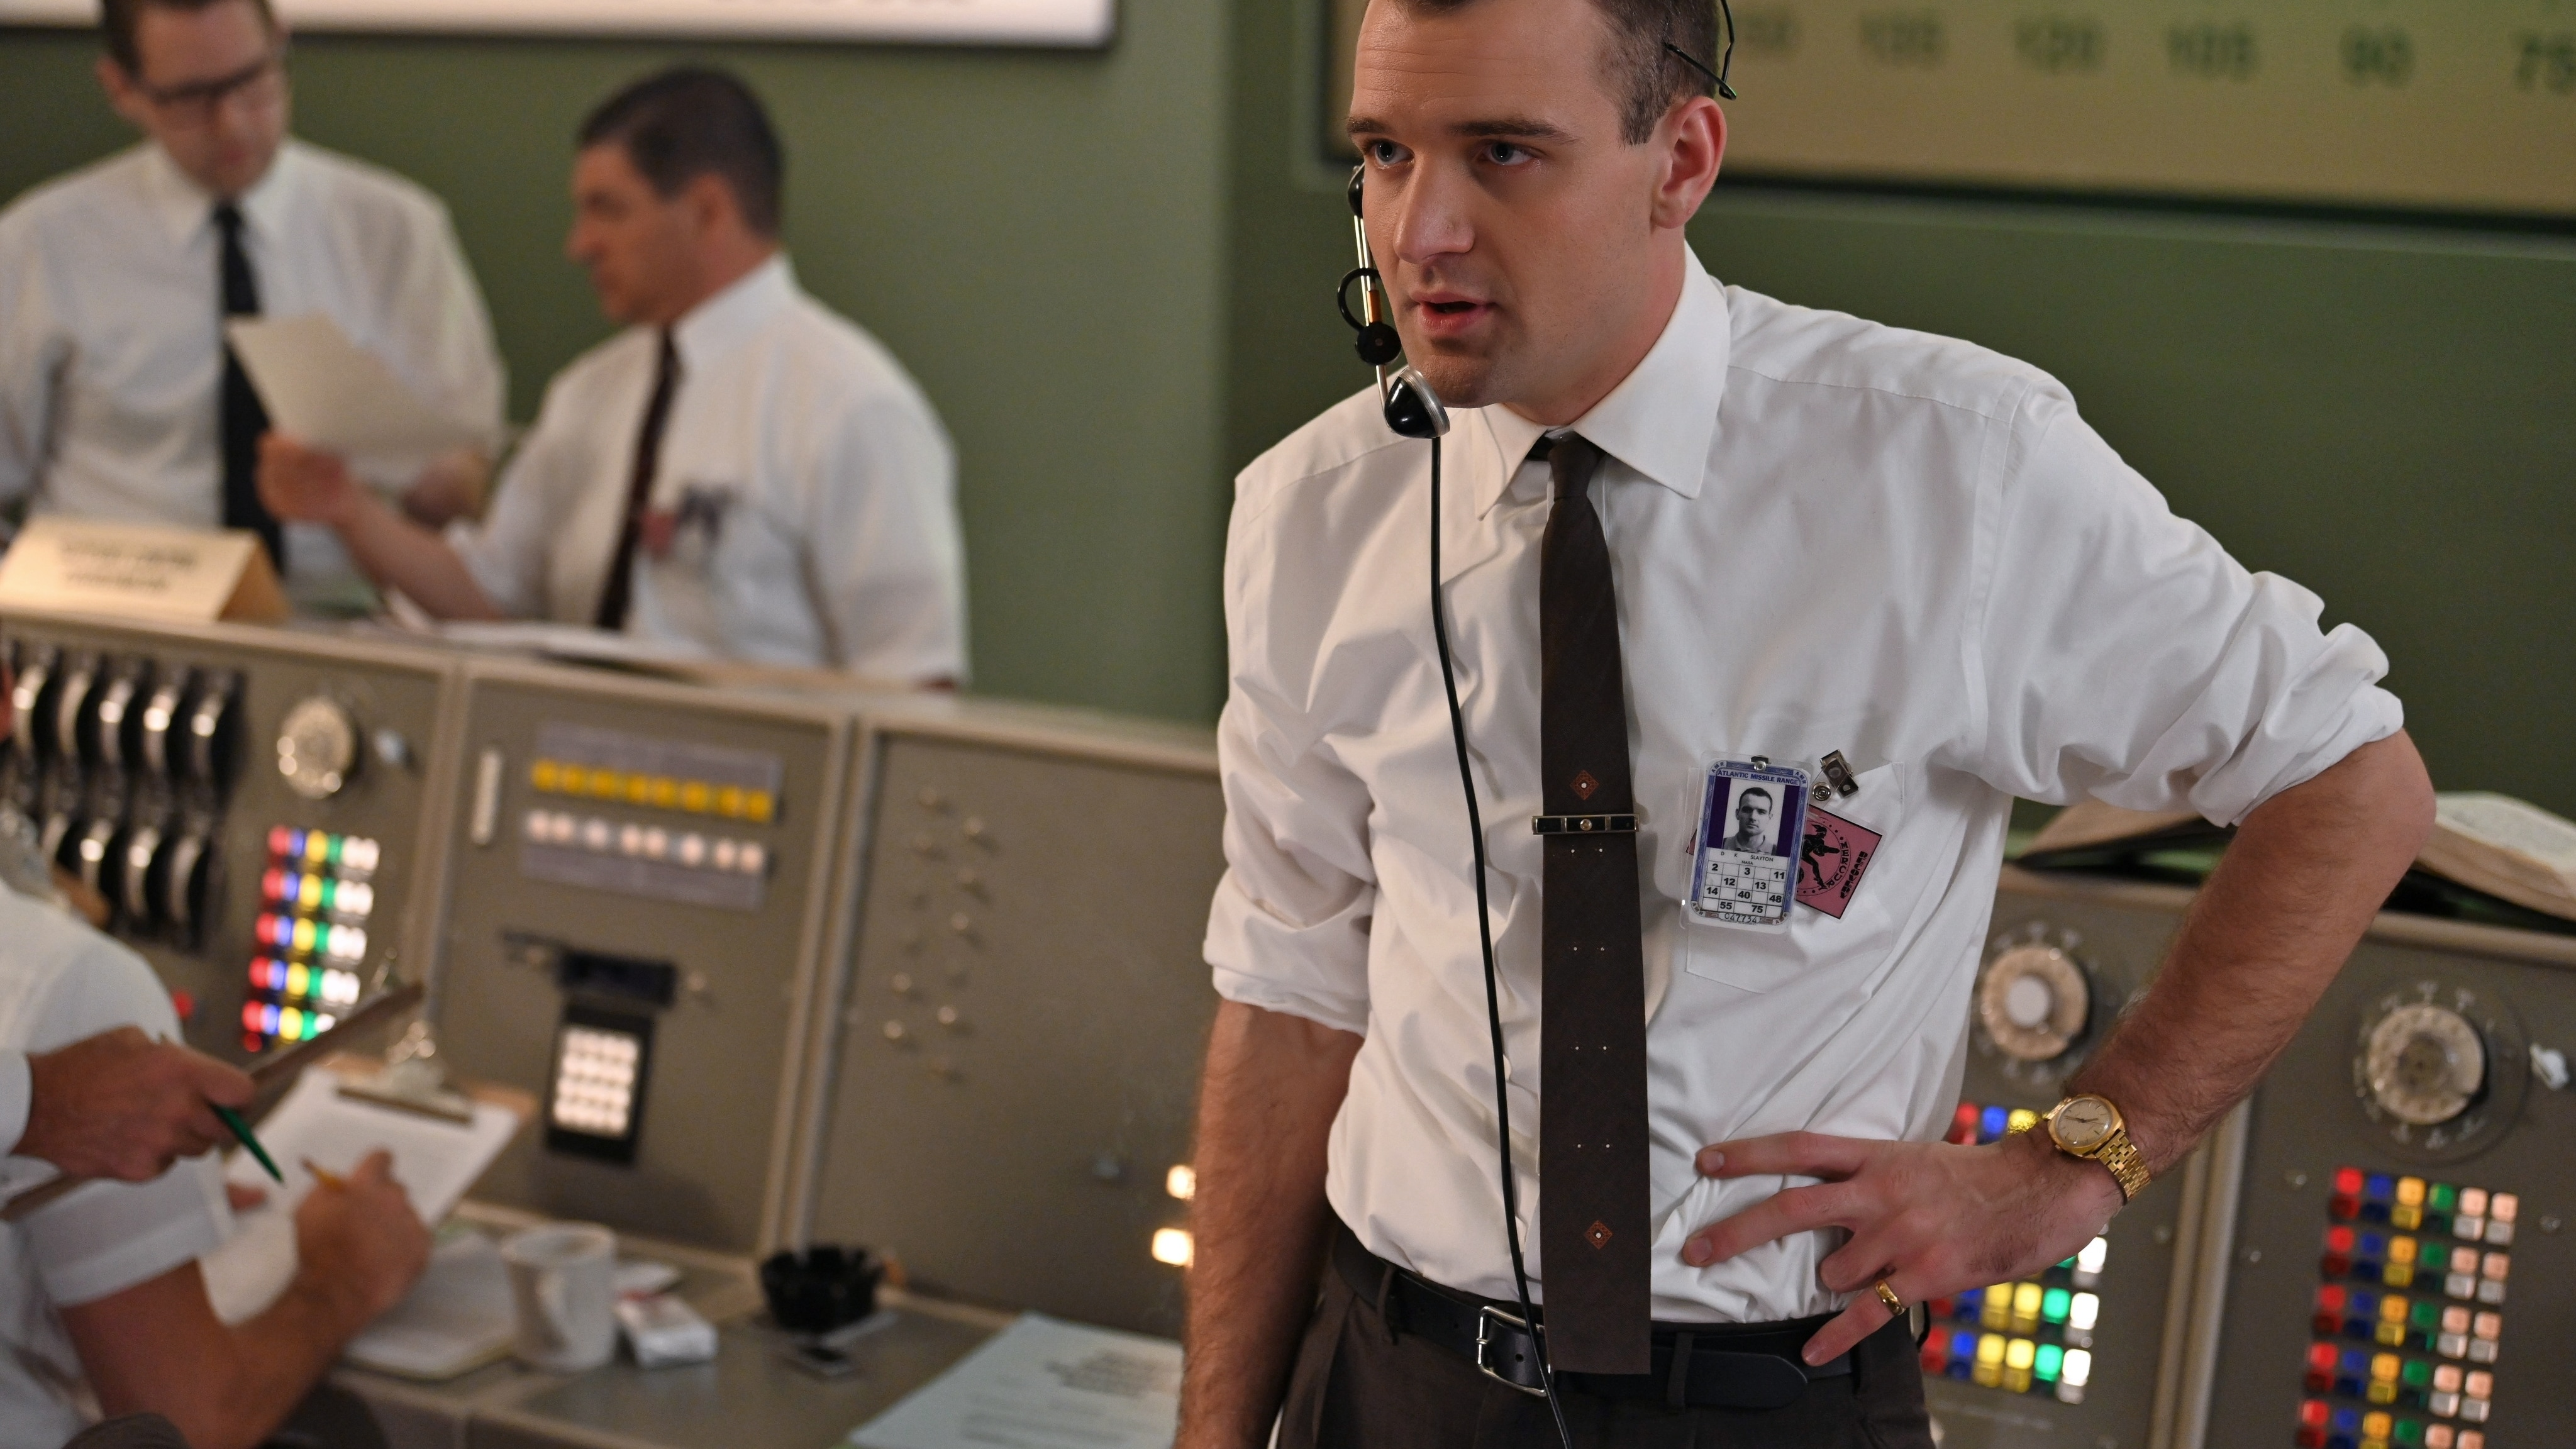 Deke Slayton (R) played by Micah Stock in Mercury Control Center during the Mercury-Redstone launch in National Geographic's THE RIGHT STUFF streaming on Disney+. (Credit: National Geographic/Gene Page)